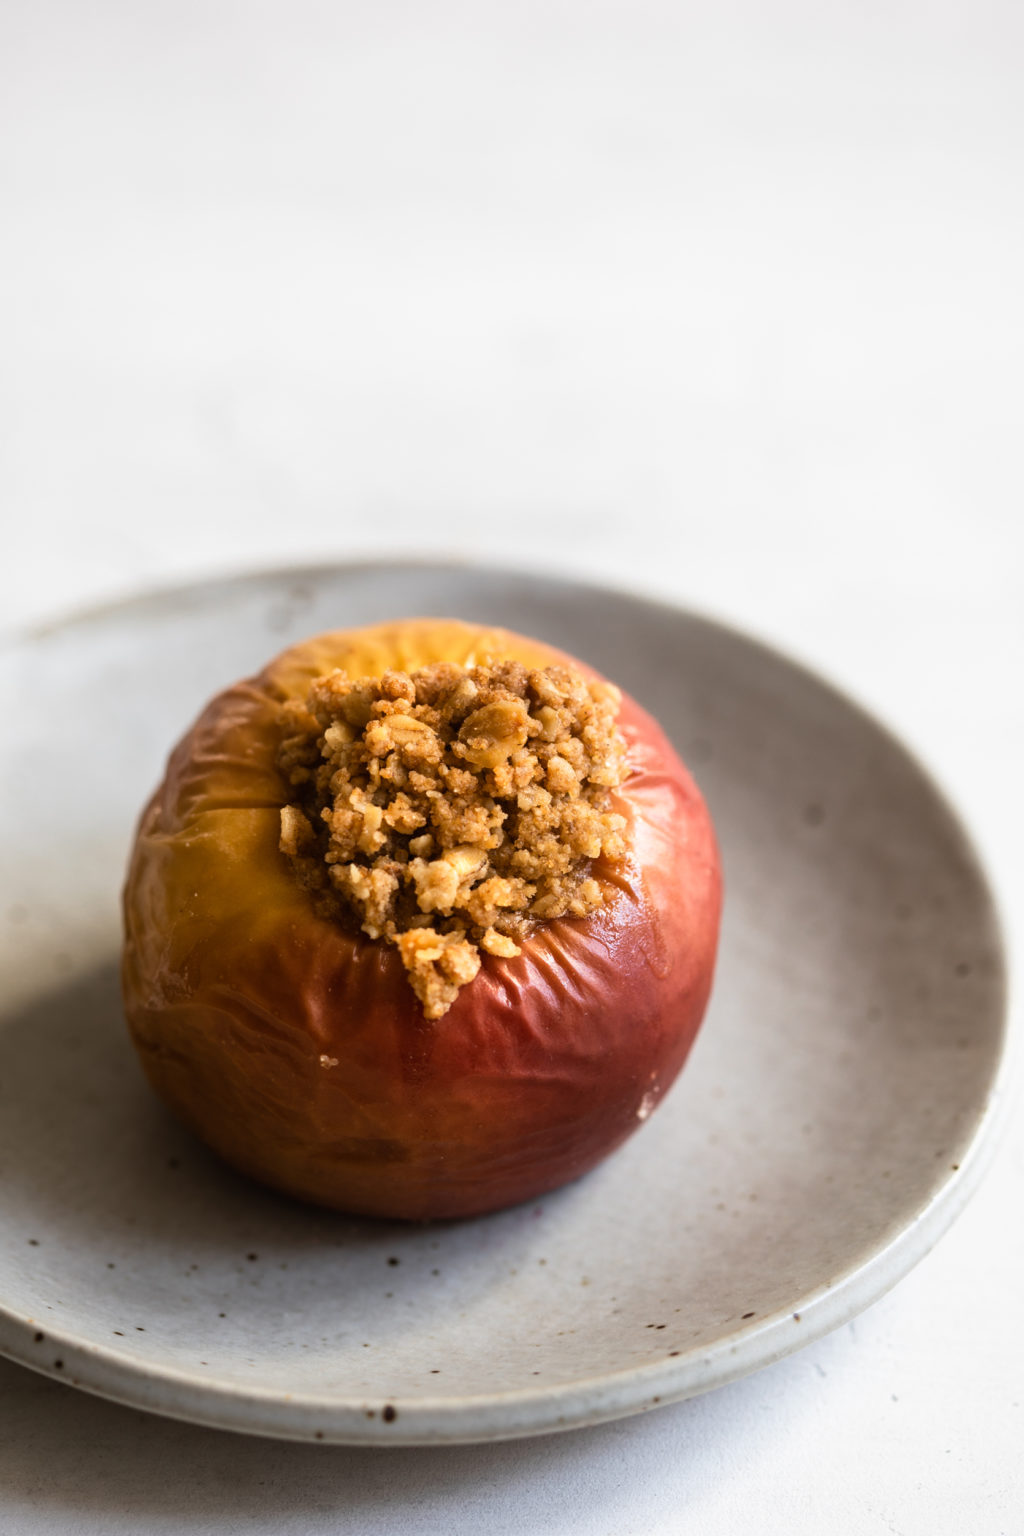 A single baked, stuffed red and golden apple is resting on a light gray, ceramic dessert plate.